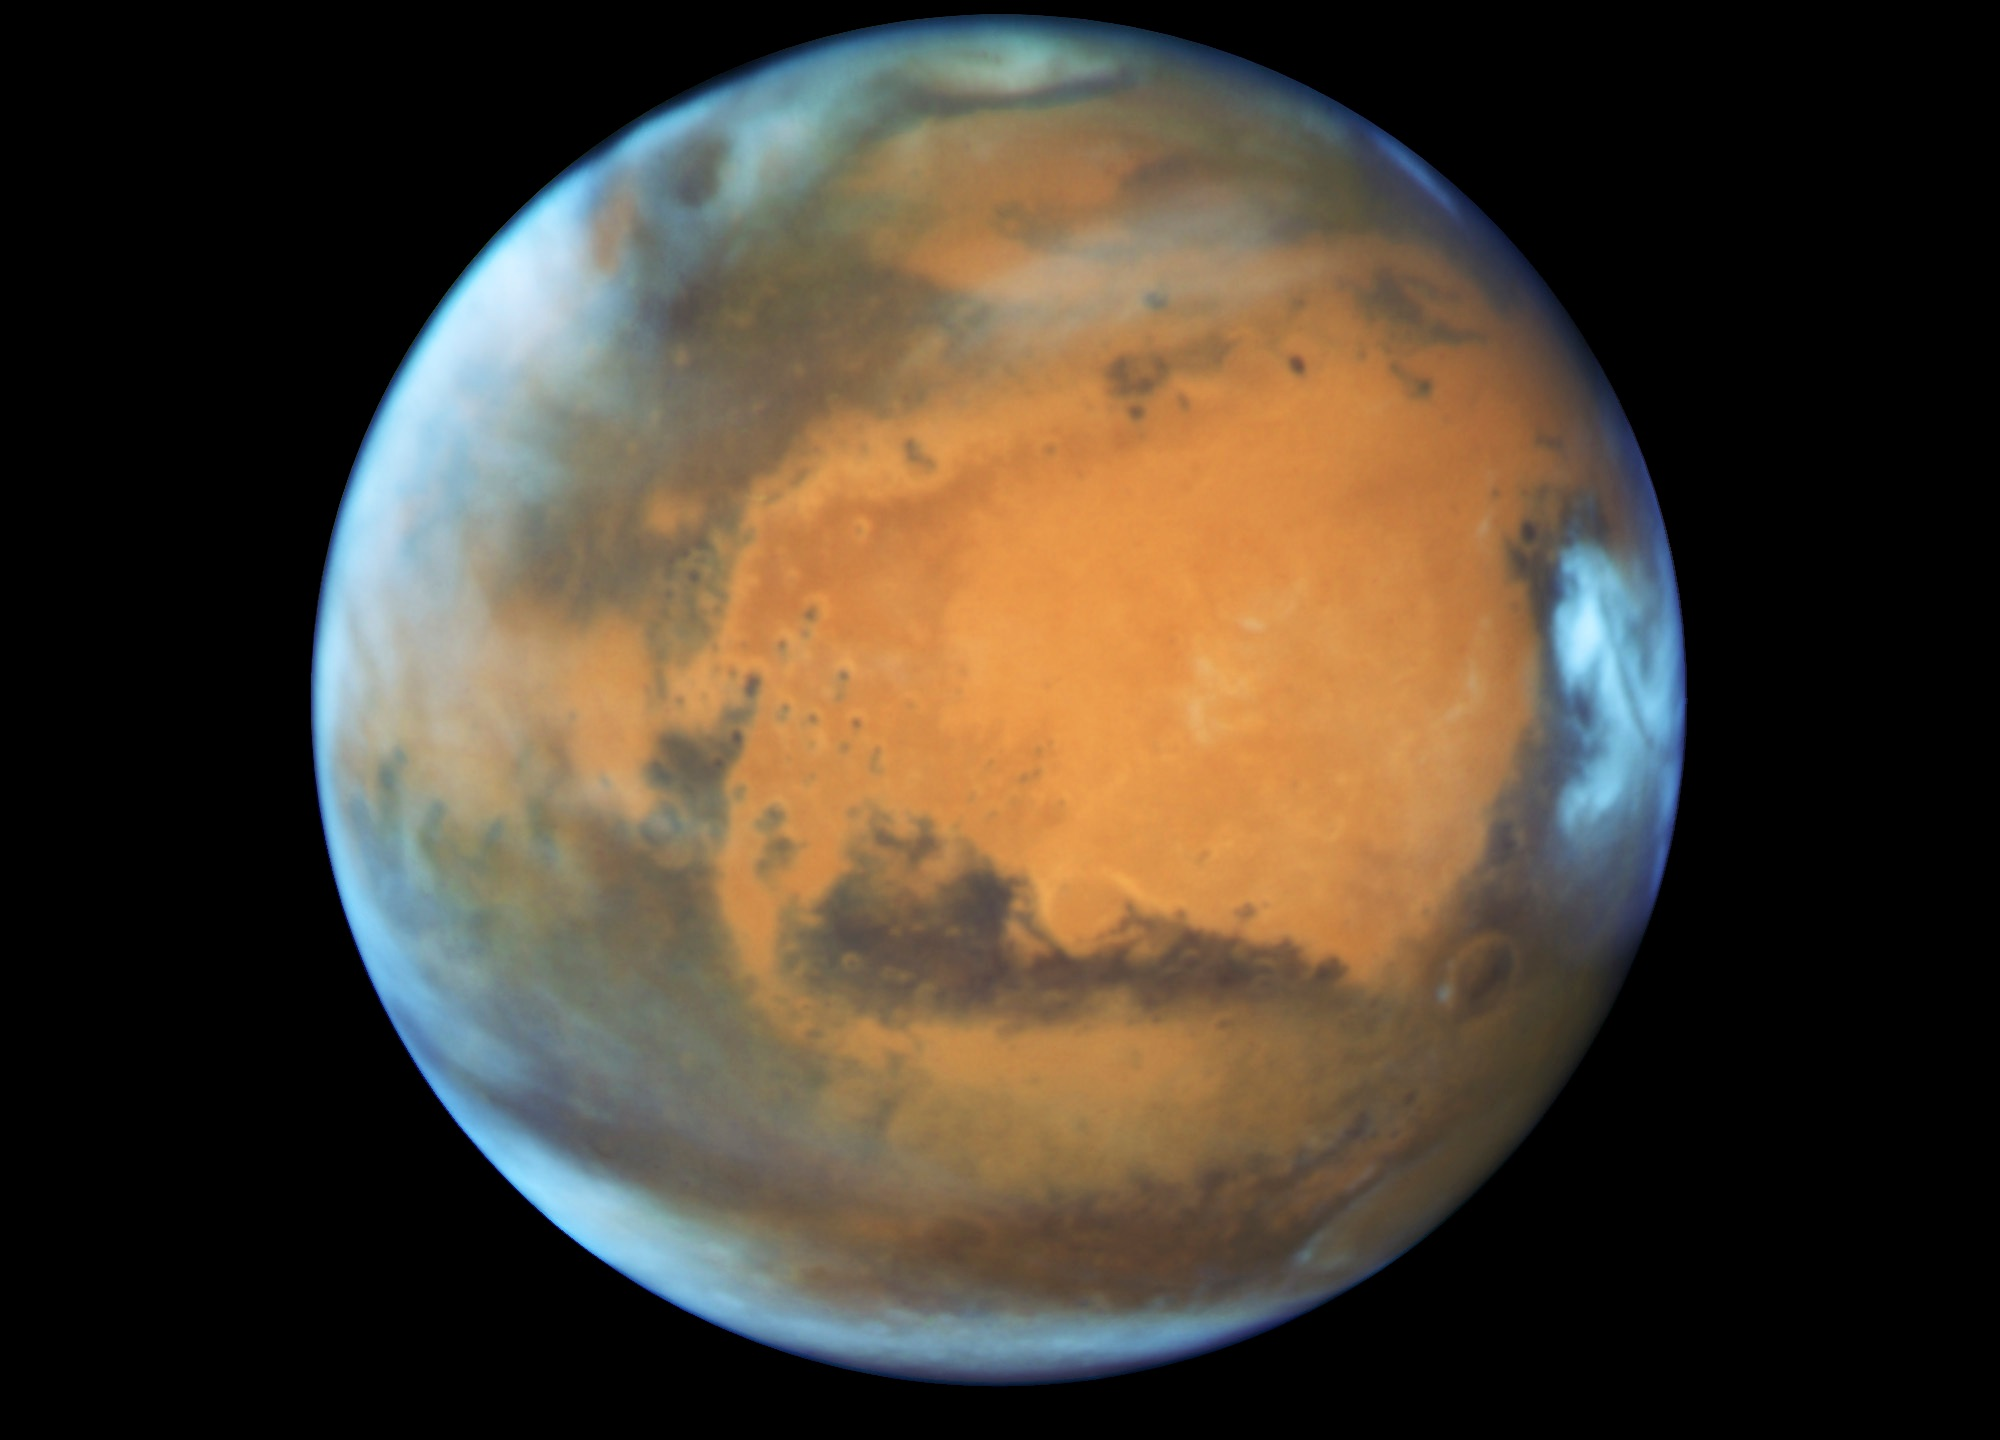 Space_Mars_Water_Reservoir_11508-159532.jpg30286601